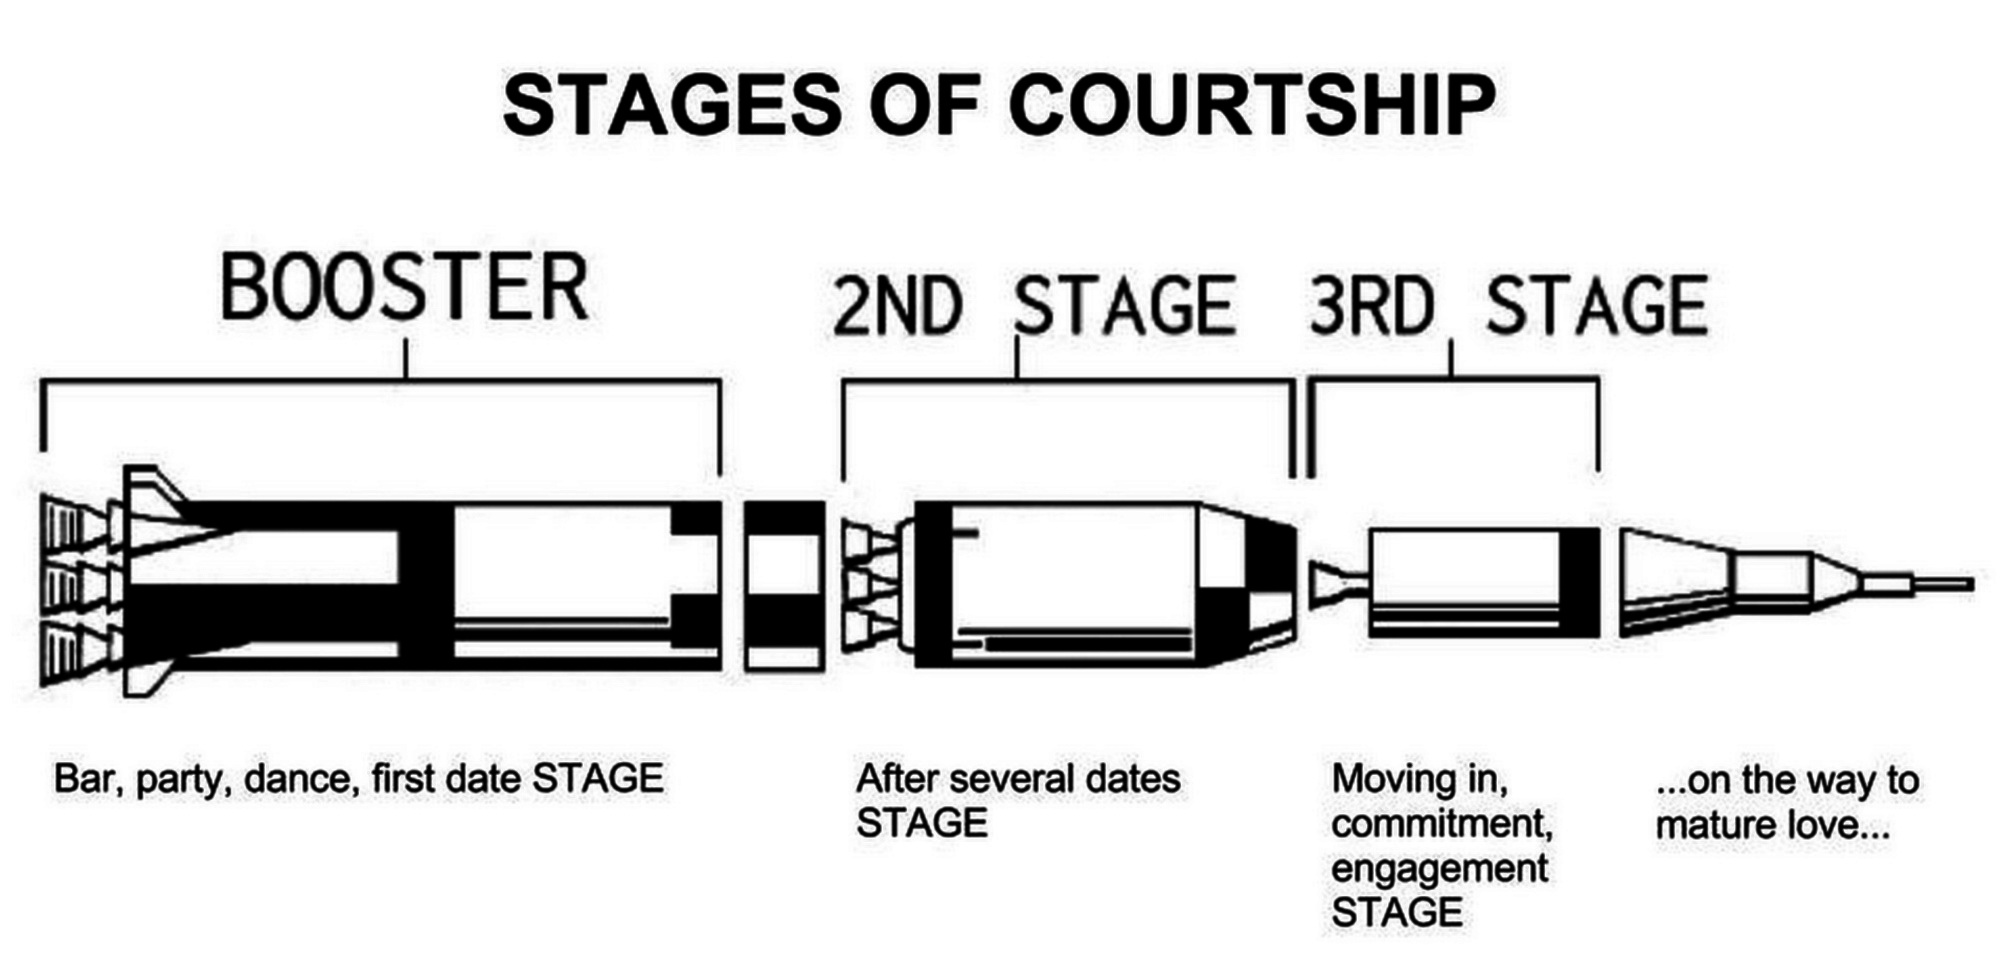 Stages of courtship